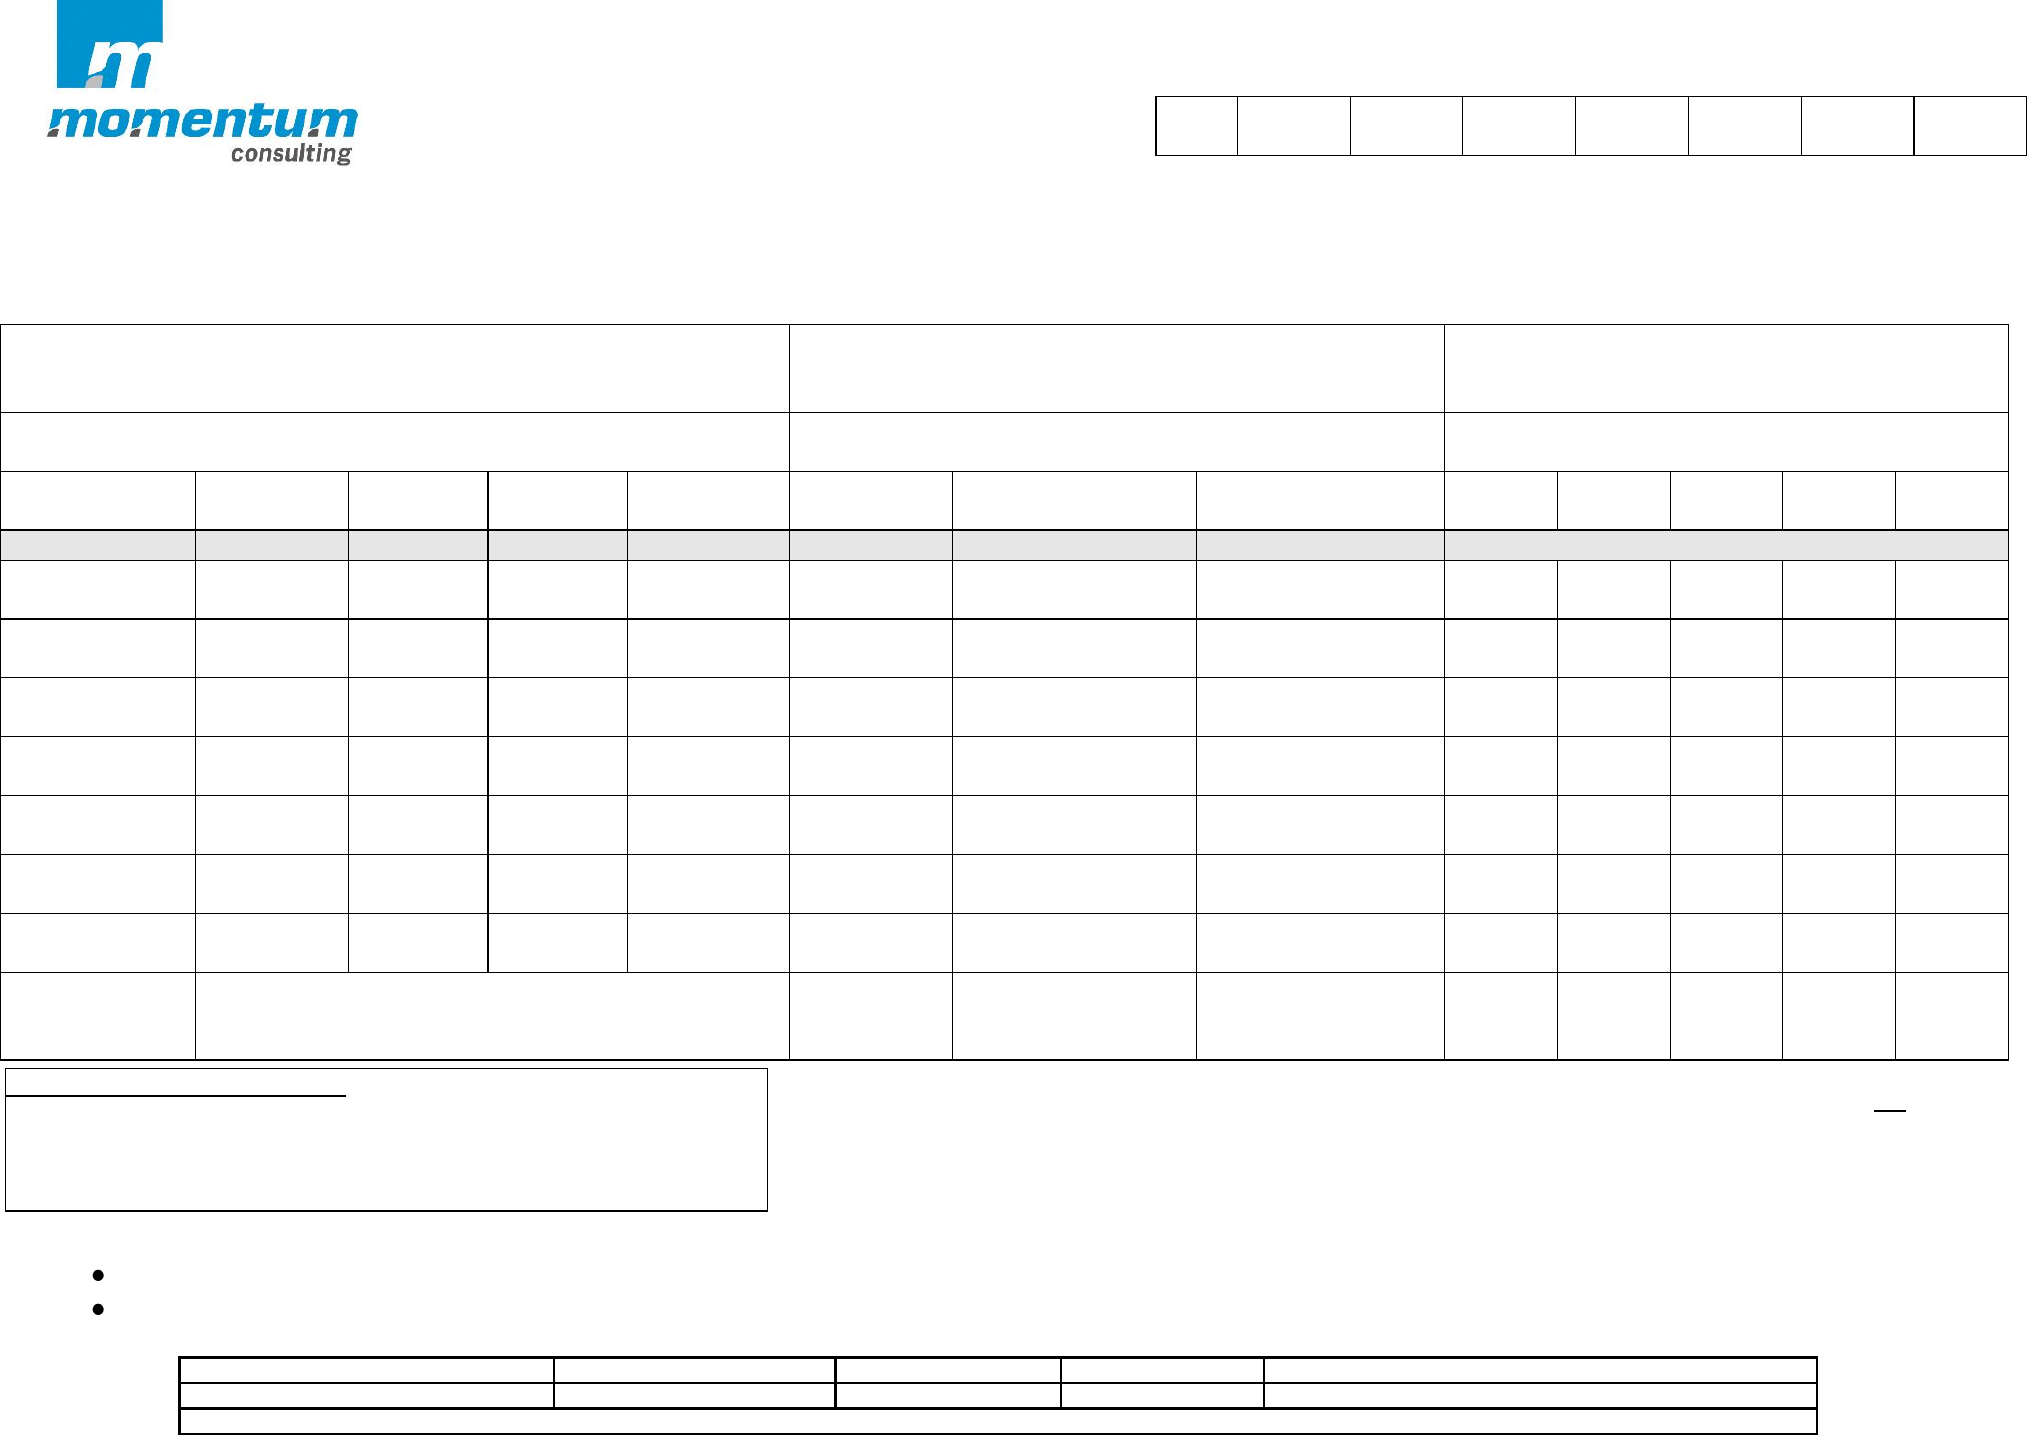 Consultant Timesheet Free Download